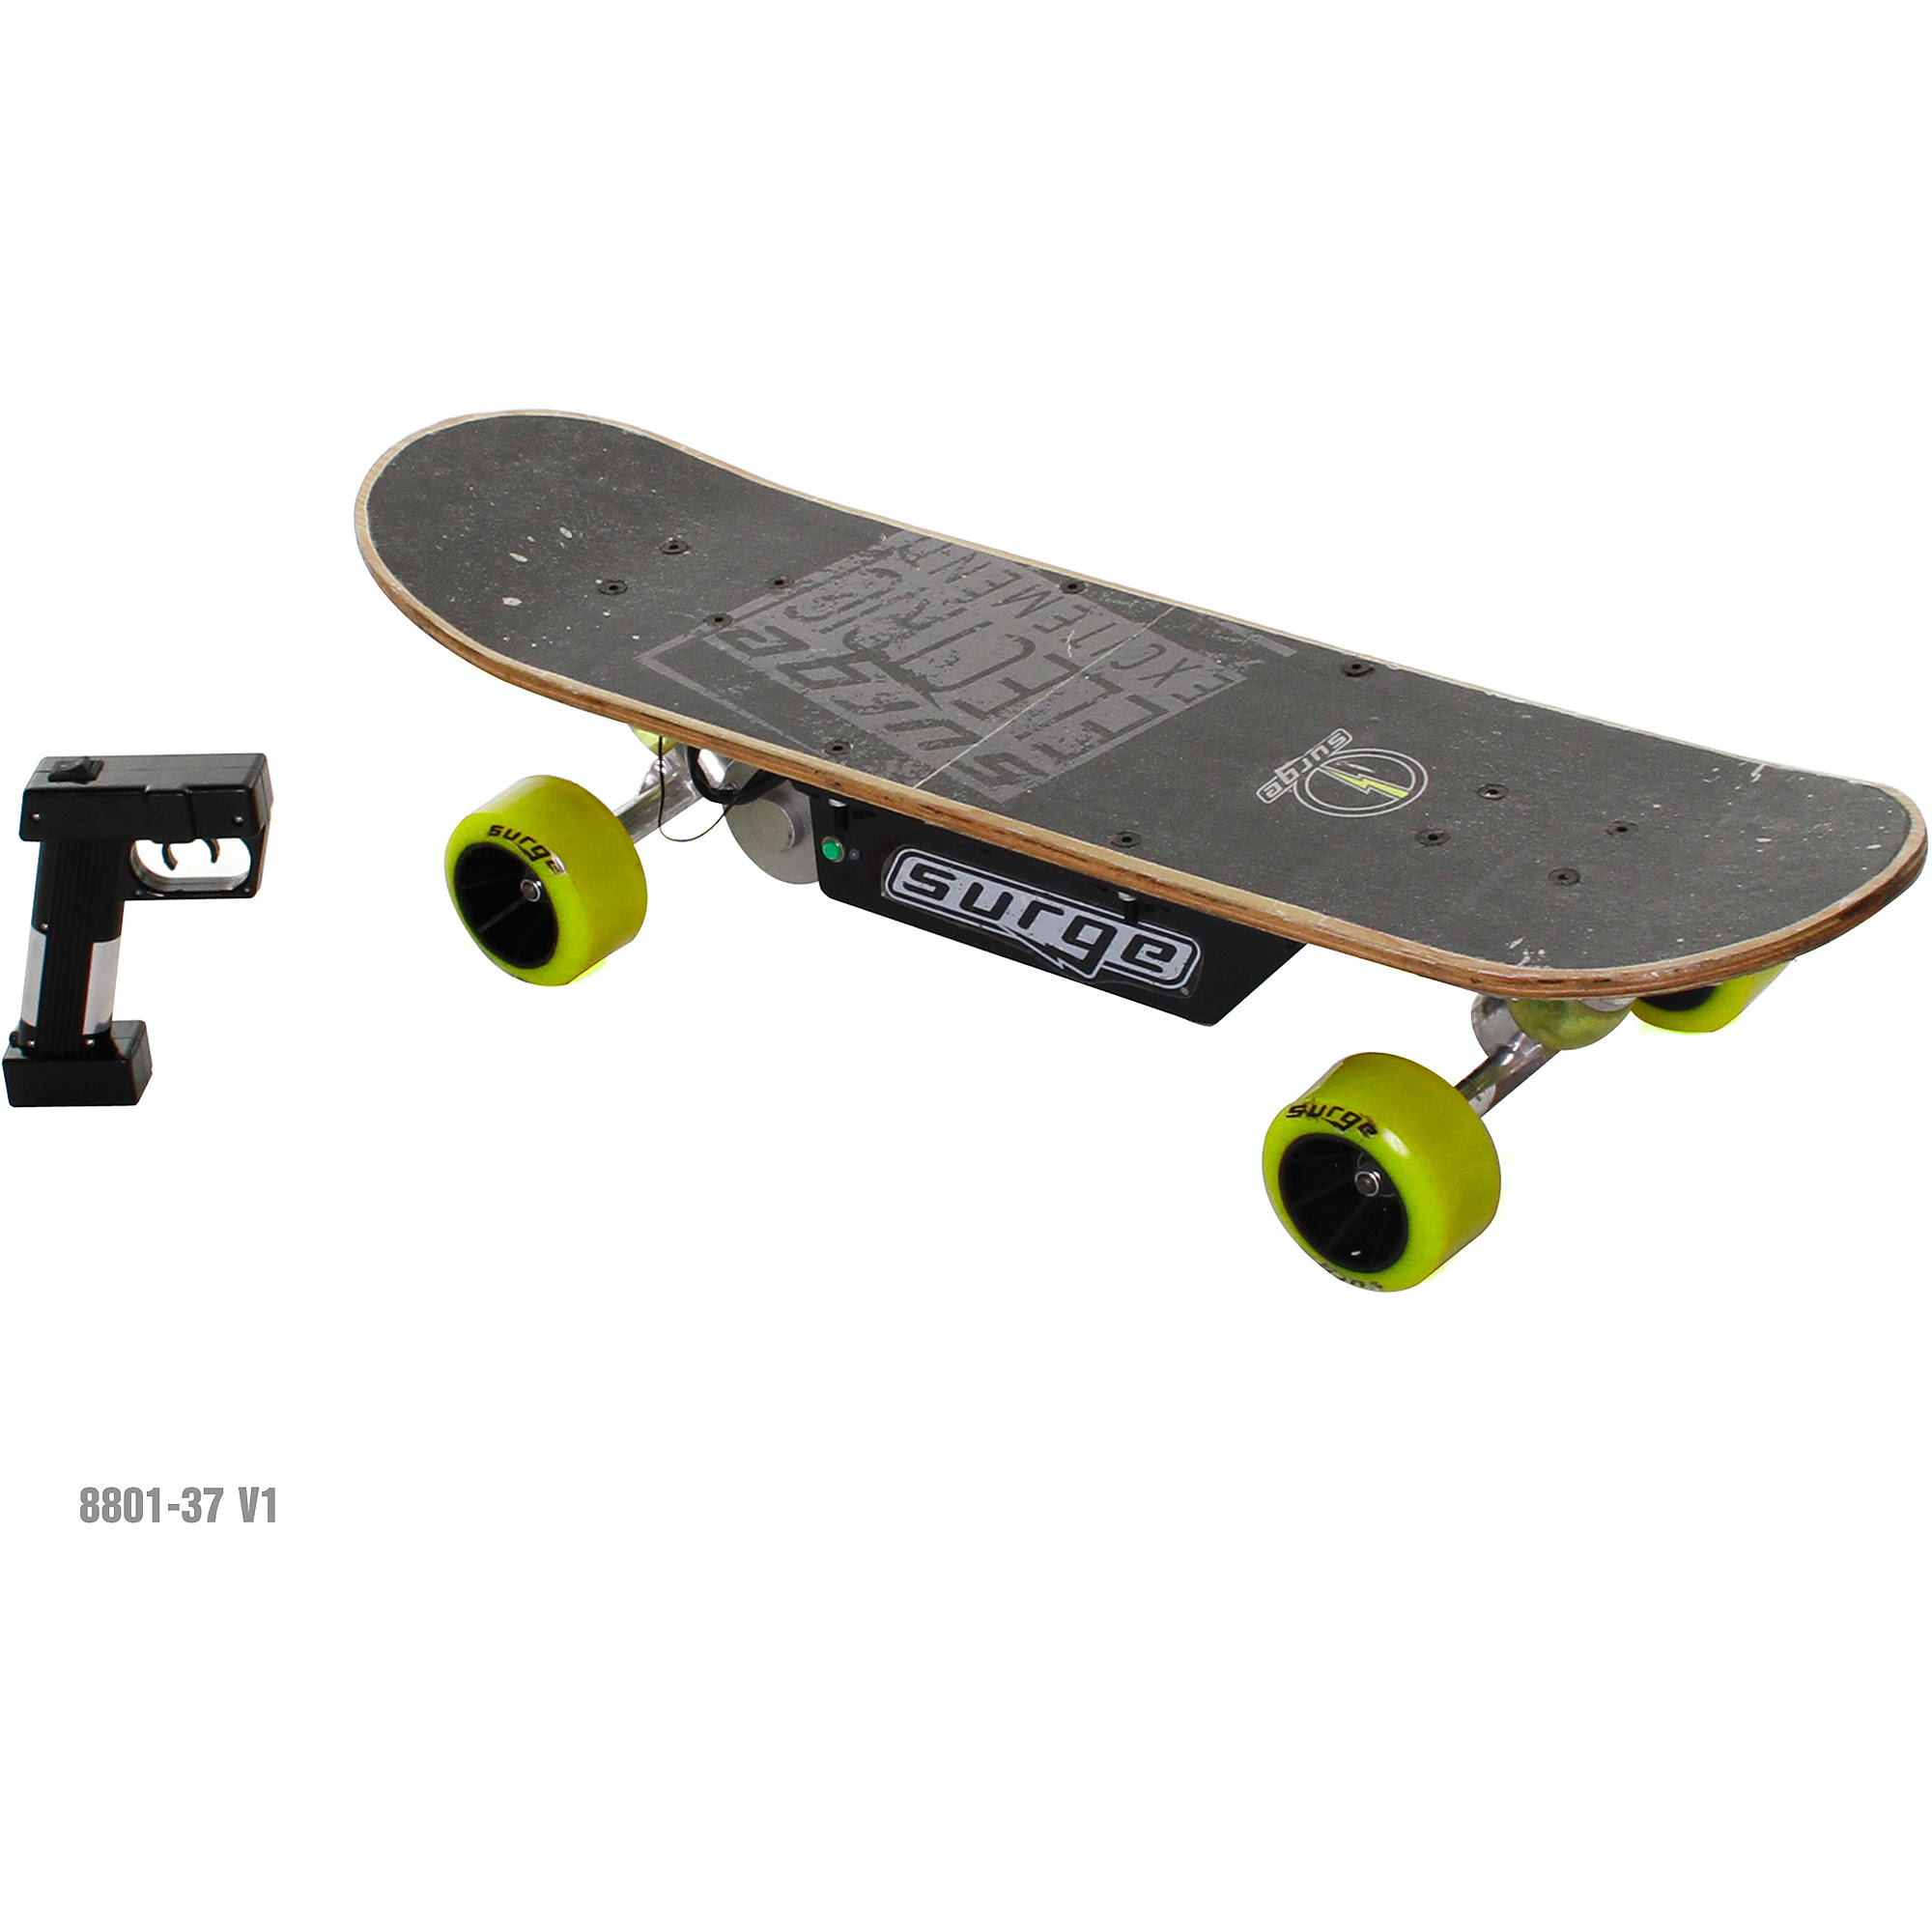 Altered Fantom 1.0 Electric Skateboard with Wireless Controller  Walmart.com